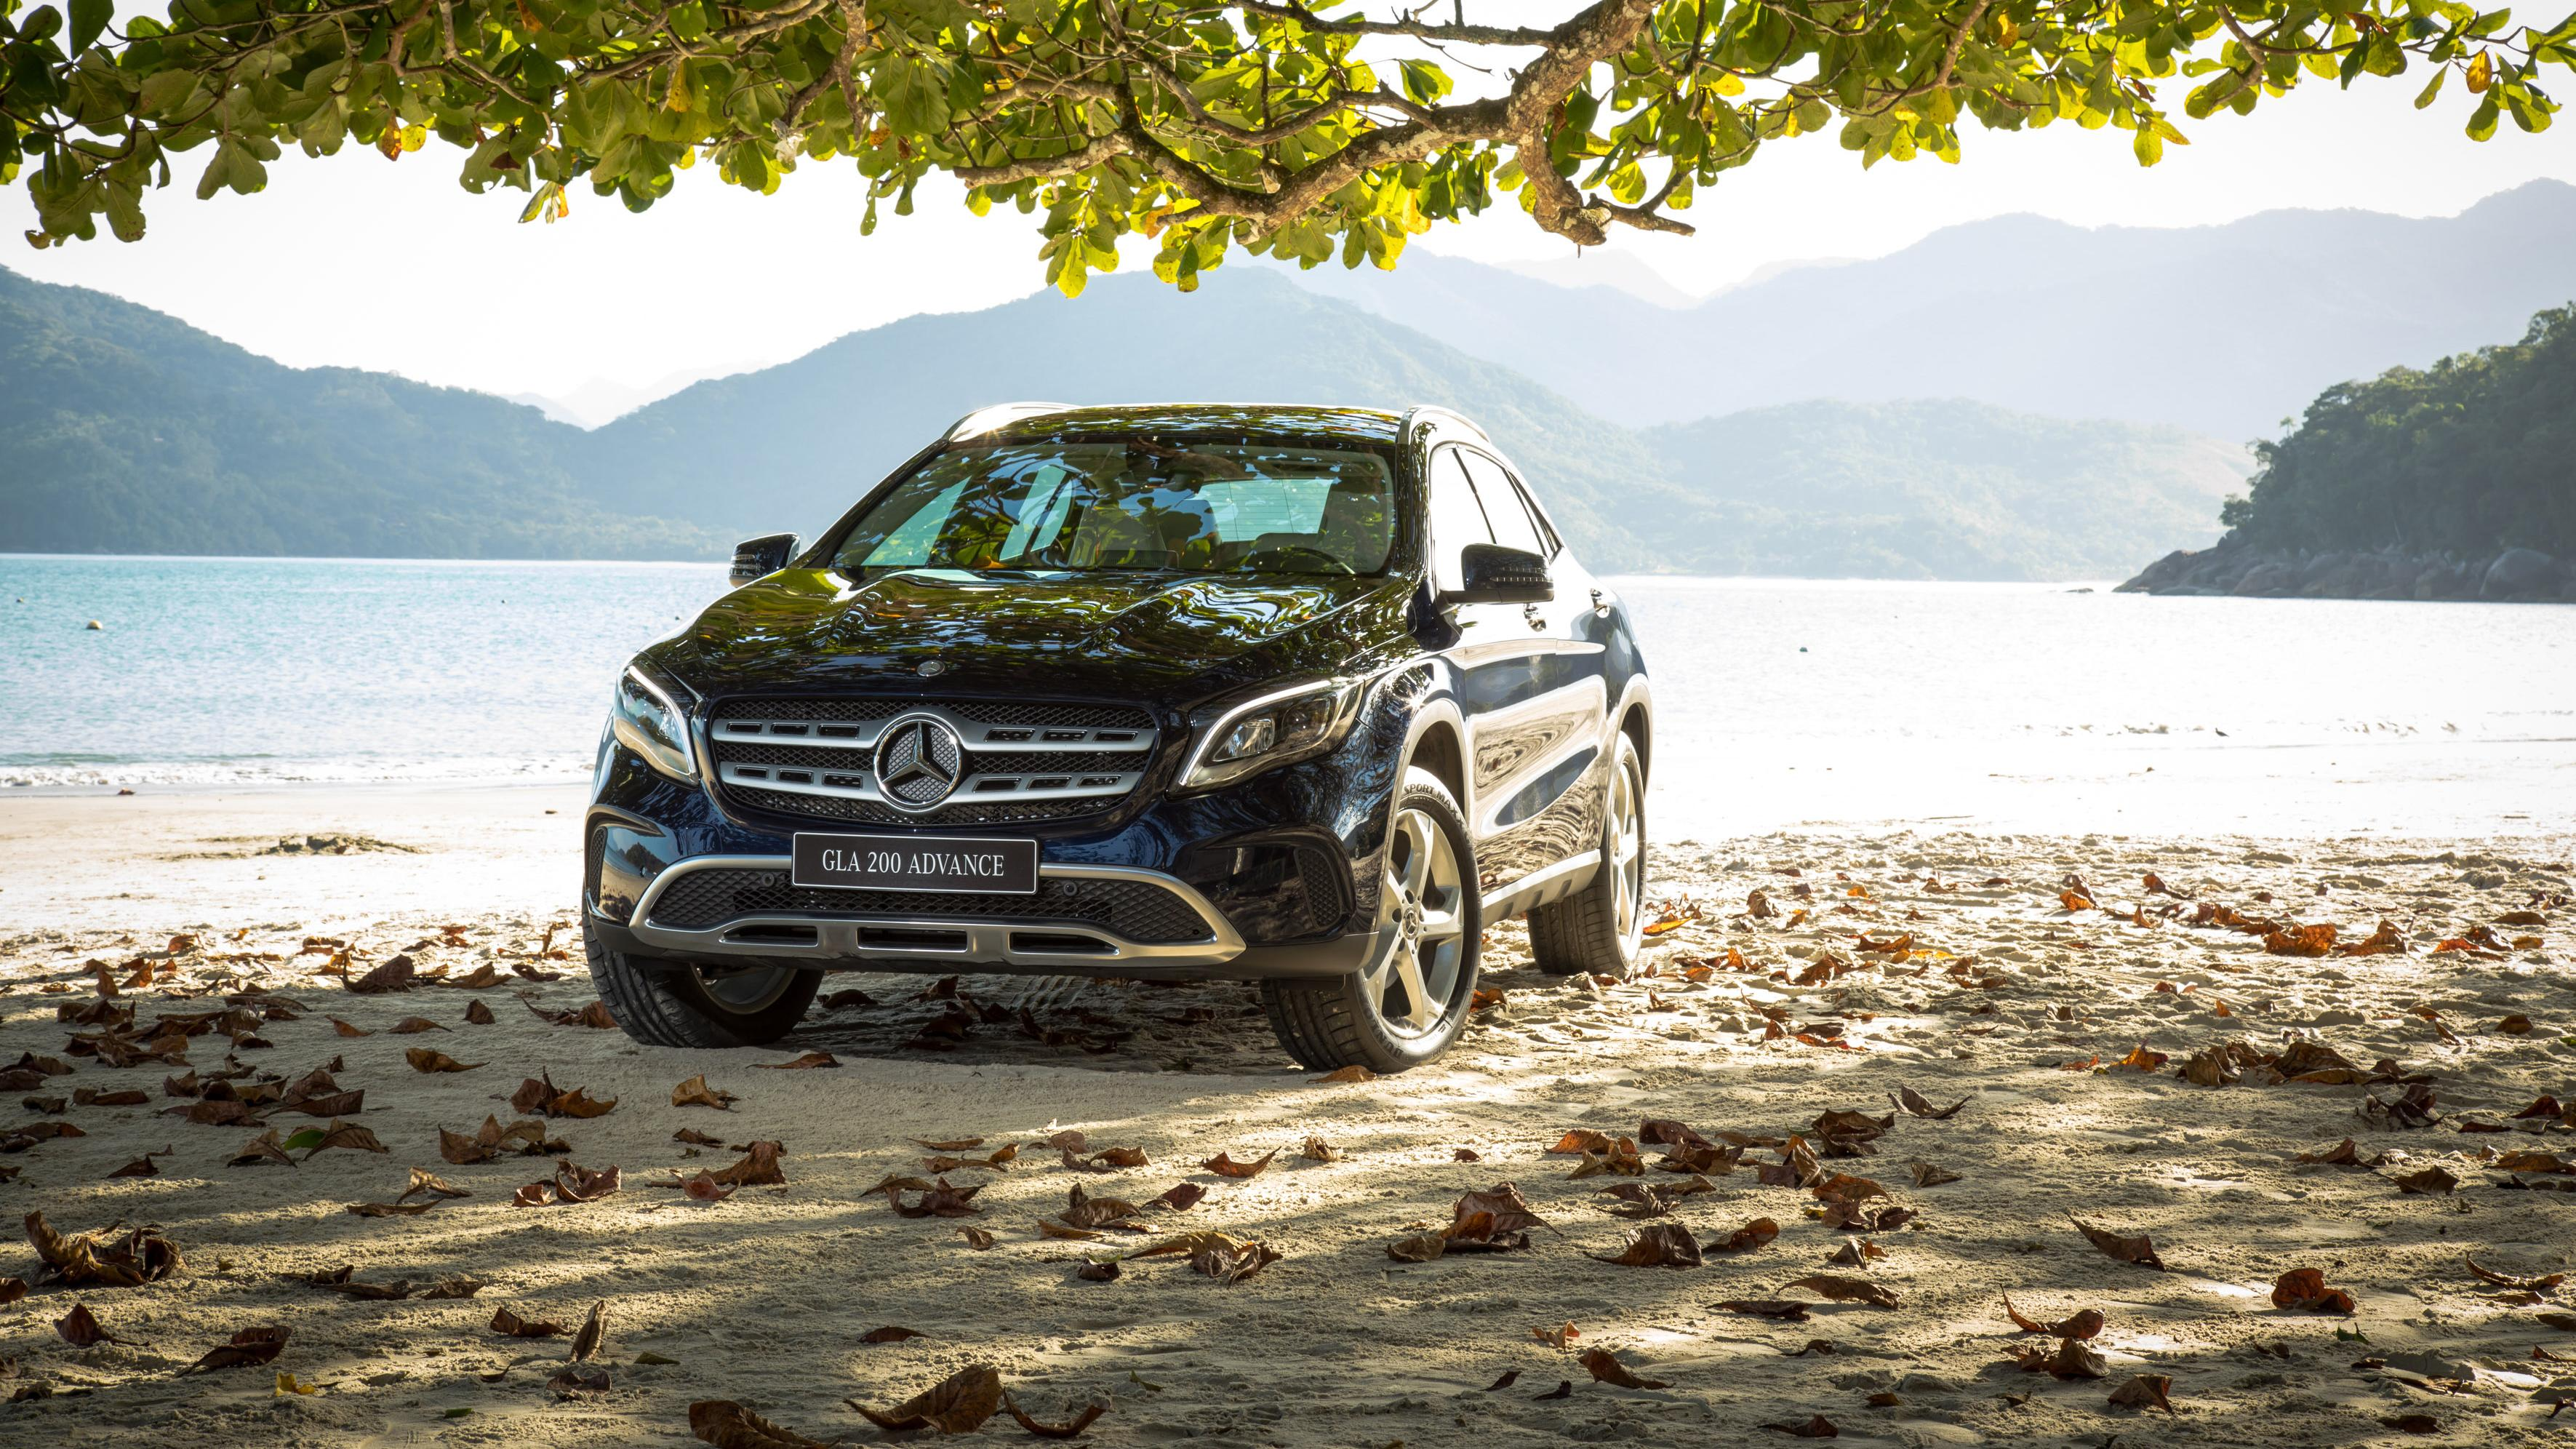 2017 Mercedes Benz GLA 200 2 Wallpaper | HD Car Wallpapers | ID #8288